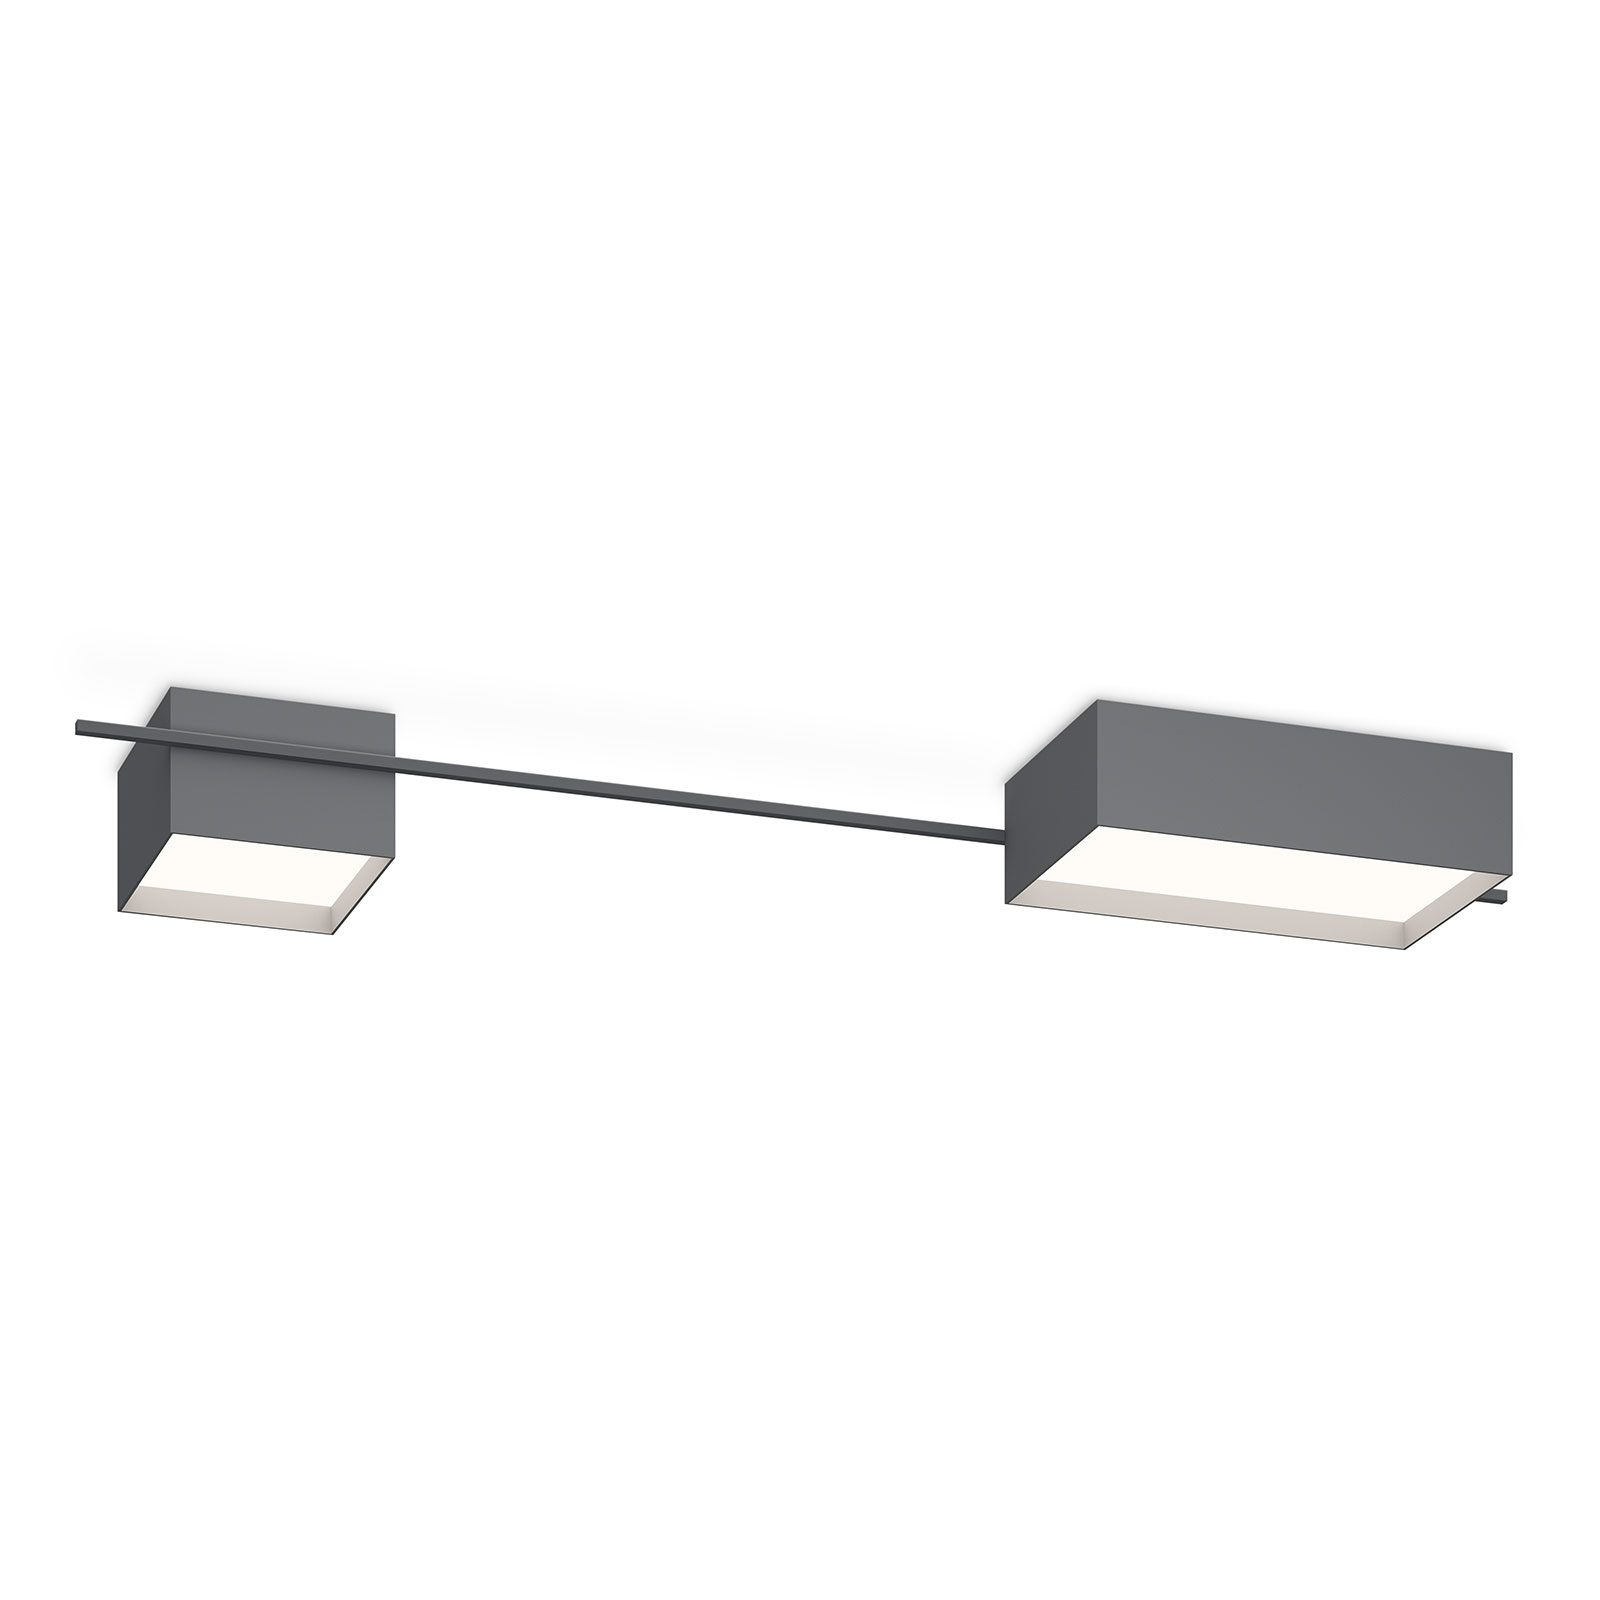 Vibia Structural 2642 plafondlamp, donkergrijs